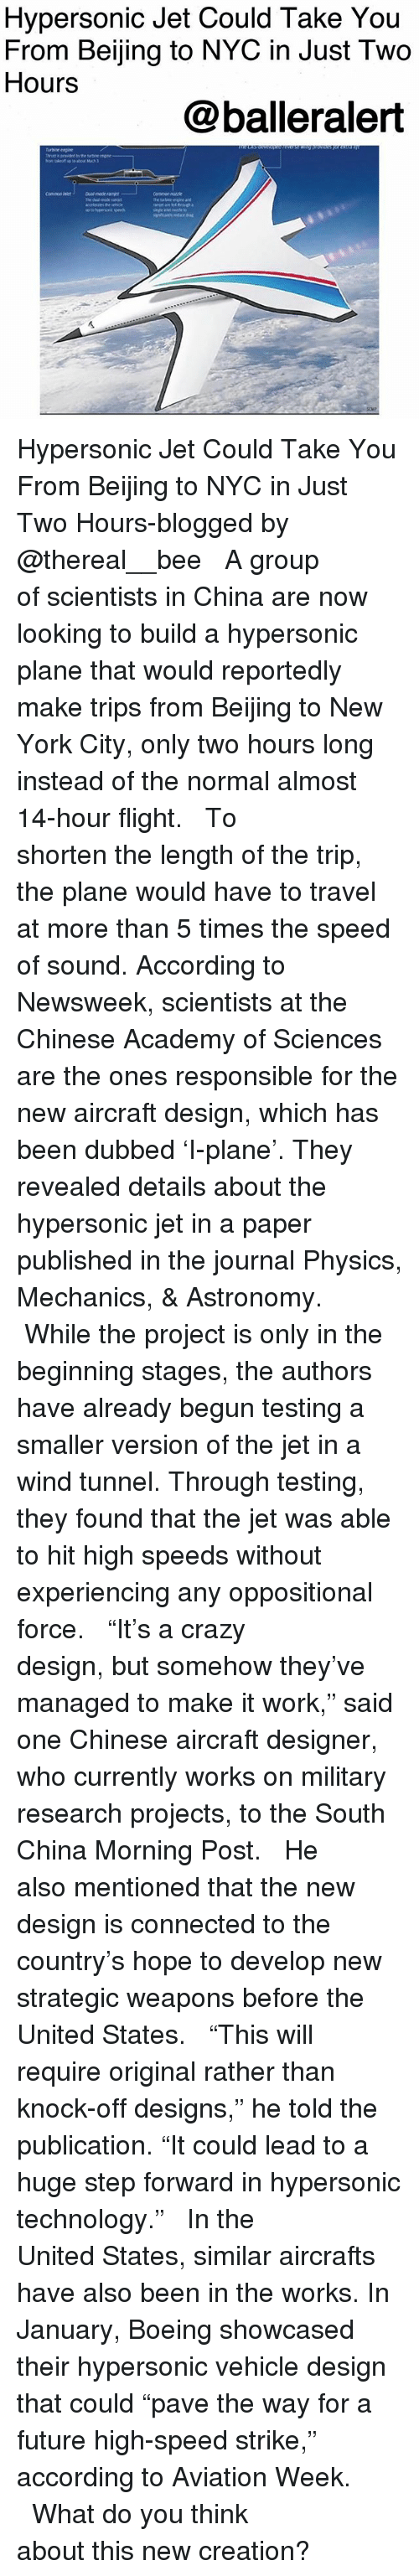 """newsweek: Hypersonic Jet Could Take You  From Beijing to NYC in Just Two  Hours  @balleralert Hypersonic Jet Could Take You From Beijing to NYC in Just Two Hours-blogged by @thereal__bee ⠀⠀⠀⠀⠀⠀⠀⠀⠀ ⠀⠀ A group of scientists in China are now looking to build a hypersonic plane that would reportedly make trips from Beijing to New York City, only two hours long instead of the normal almost 14-hour flight. ⠀⠀⠀⠀⠀⠀⠀⠀⠀ ⠀⠀ To shorten the length of the trip, the plane would have to travel at more than 5 times the speed of sound. According to Newsweek, scientists at the Chinese Academy of Sciences are the ones responsible for the new aircraft design, which has been dubbed 'I-plane'. They revealed details about the hypersonic jet in a paper published in the journal Physics, Mechanics, & Astronomy. ⠀⠀⠀⠀⠀⠀⠀⠀⠀ ⠀⠀ While the project is only in the beginning stages, the authors have already begun testing a smaller version of the jet in a wind tunnel. Through testing, they found that the jet was able to hit high speeds without experiencing any oppositional force. ⠀⠀⠀⠀⠀⠀⠀⠀⠀ ⠀⠀ """"It's a crazy design, but somehow they've managed to make it work,"""" said one Chinese aircraft designer, who currently works on military research projects, to the South China Morning Post. ⠀⠀⠀⠀⠀⠀⠀⠀⠀ ⠀⠀ He also mentioned that the new design is connected to the country's hope to develop new strategic weapons before the United States. ⠀⠀⠀⠀⠀⠀⠀⠀⠀ ⠀⠀ """"This will require original rather than knock-off designs,"""" he told the publication. """"It could lead to a huge step forward in hypersonic technology."""" ⠀⠀⠀⠀⠀⠀⠀⠀⠀ ⠀⠀ In the United States, similar aircrafts have also been in the works. In January, Boeing showcased their hypersonic vehicle design that could """"pave the way for a future high-speed strike,"""" according to Aviation Week. ⠀⠀⠀⠀⠀⠀⠀⠀⠀ ⠀⠀ What do you think about this new creation?"""